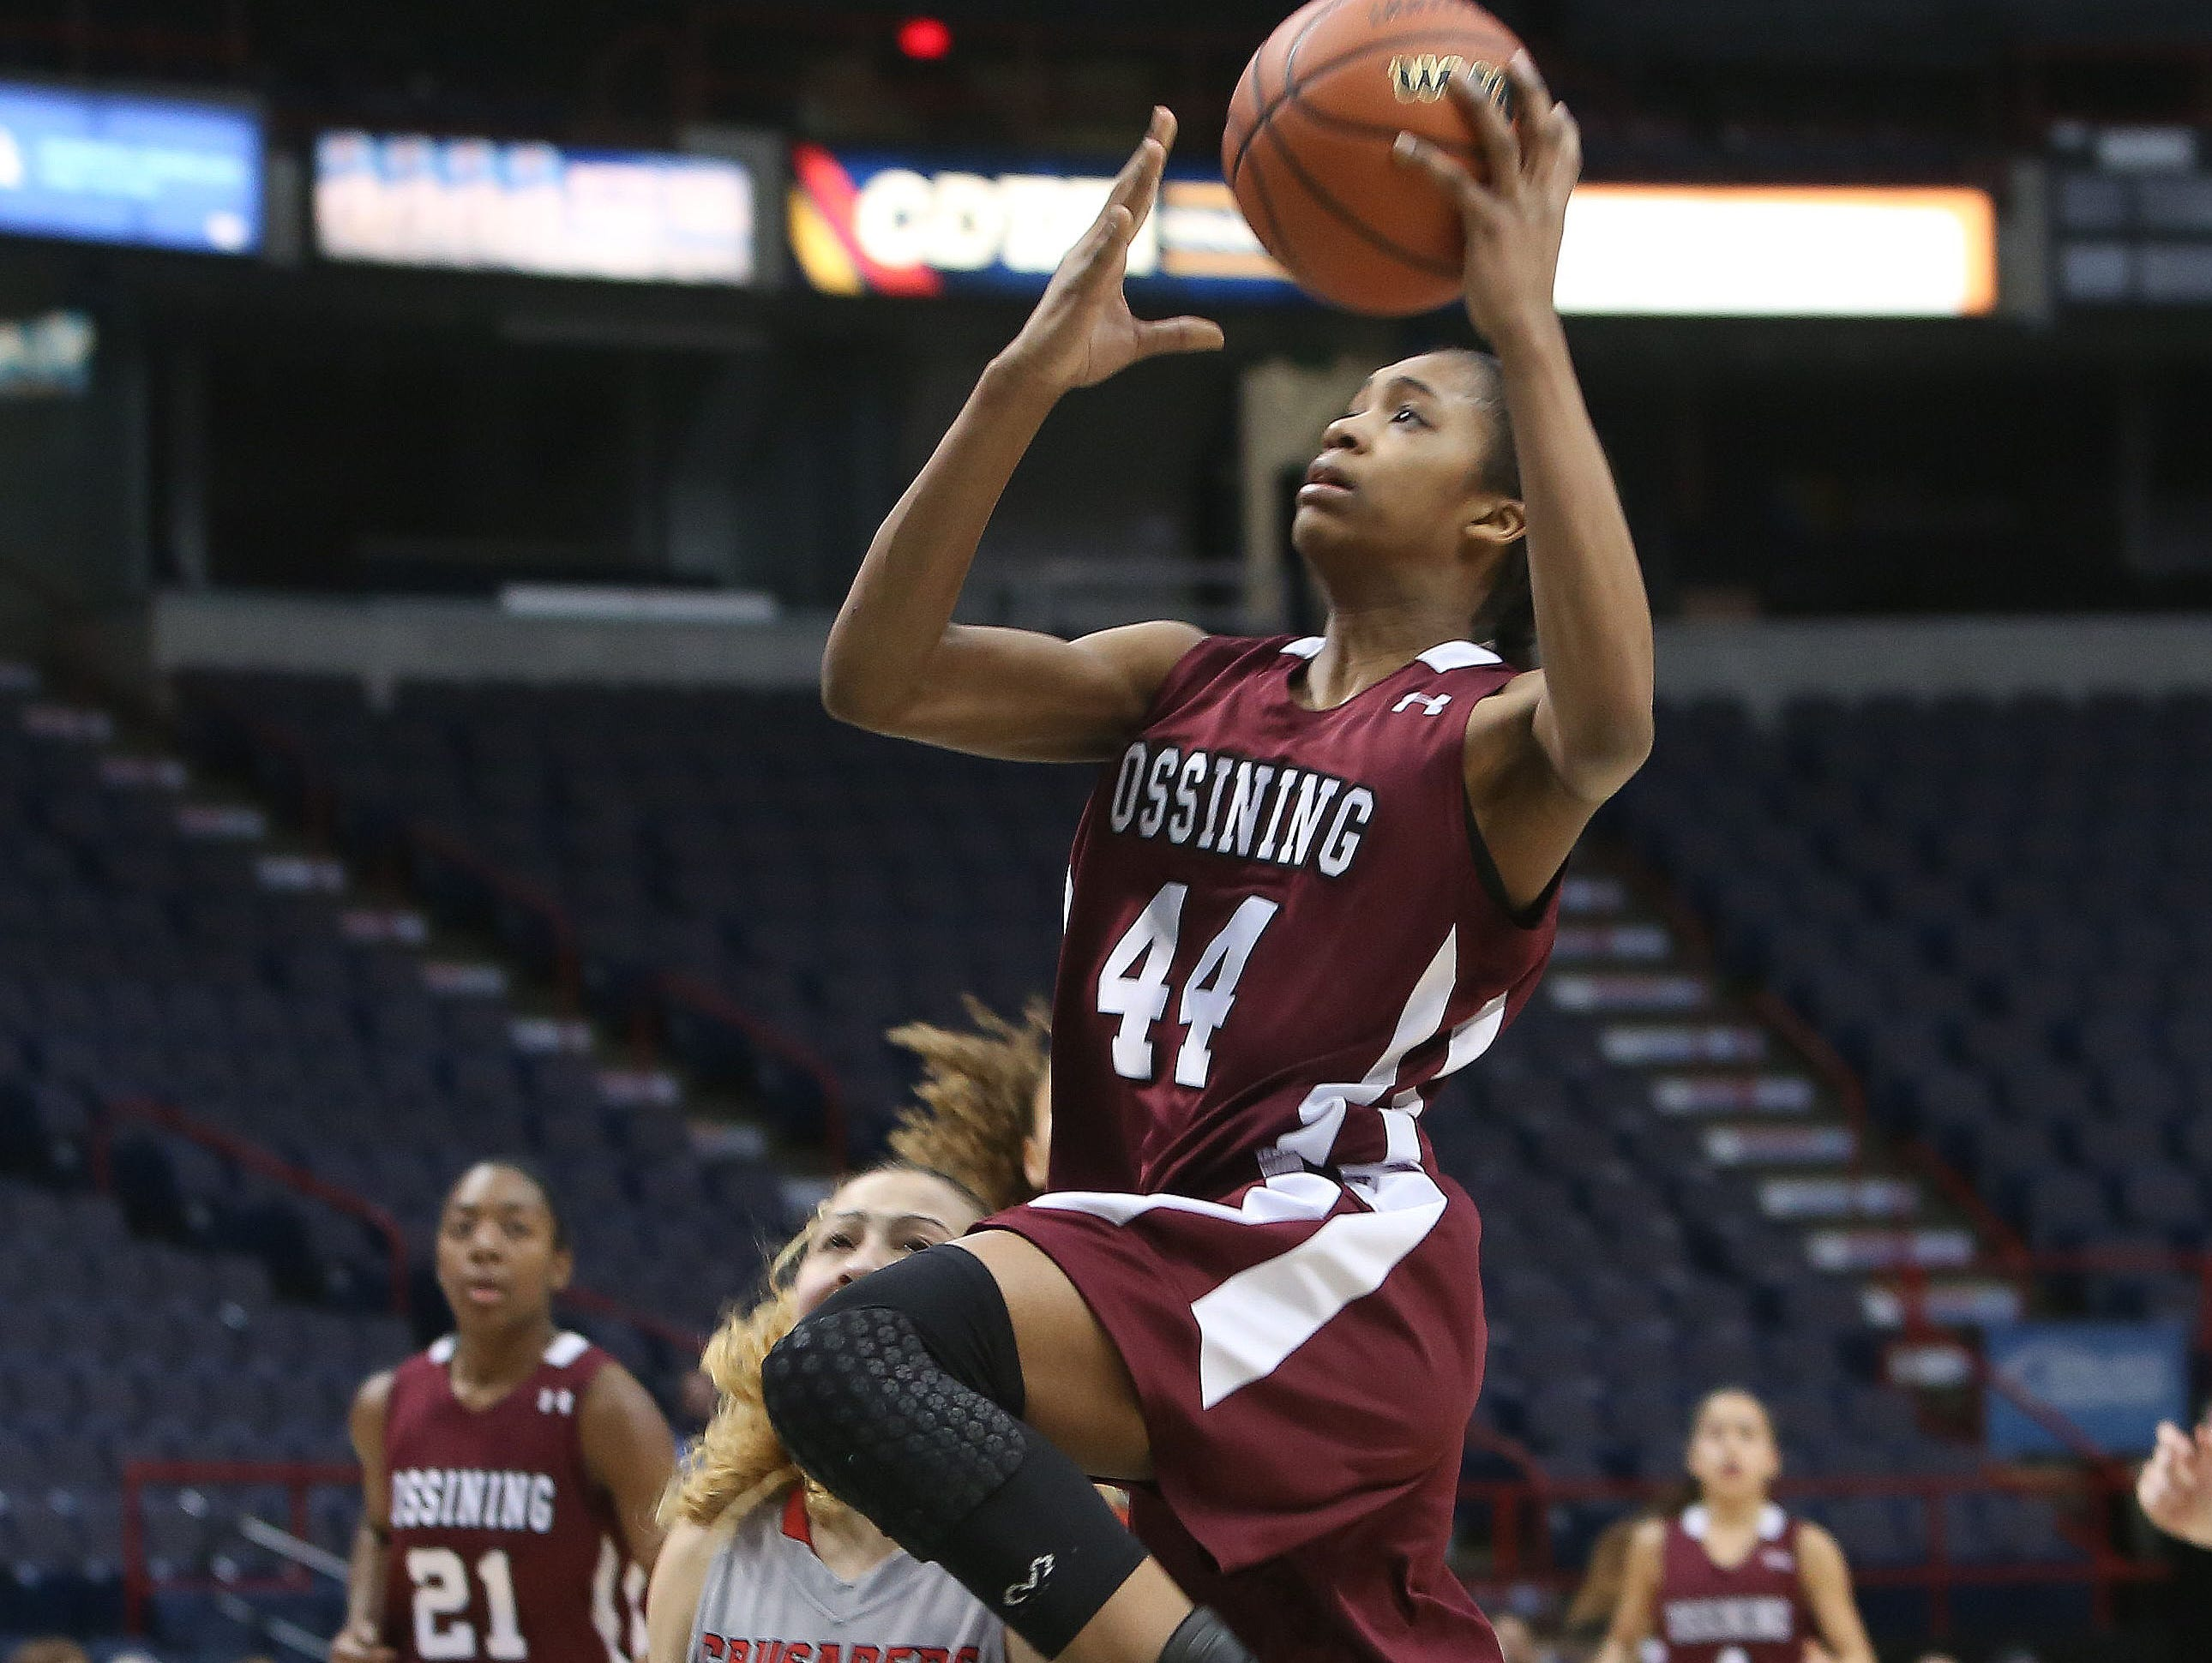 Ossining's Aubrey Griffin (44) goes up for a shot in front of Long Island Lutheran's Grace Stone (10) during the girls Class A final of the New York State Federation Tournament of Champions at the Times Union Center in Albany March 18, 2016.